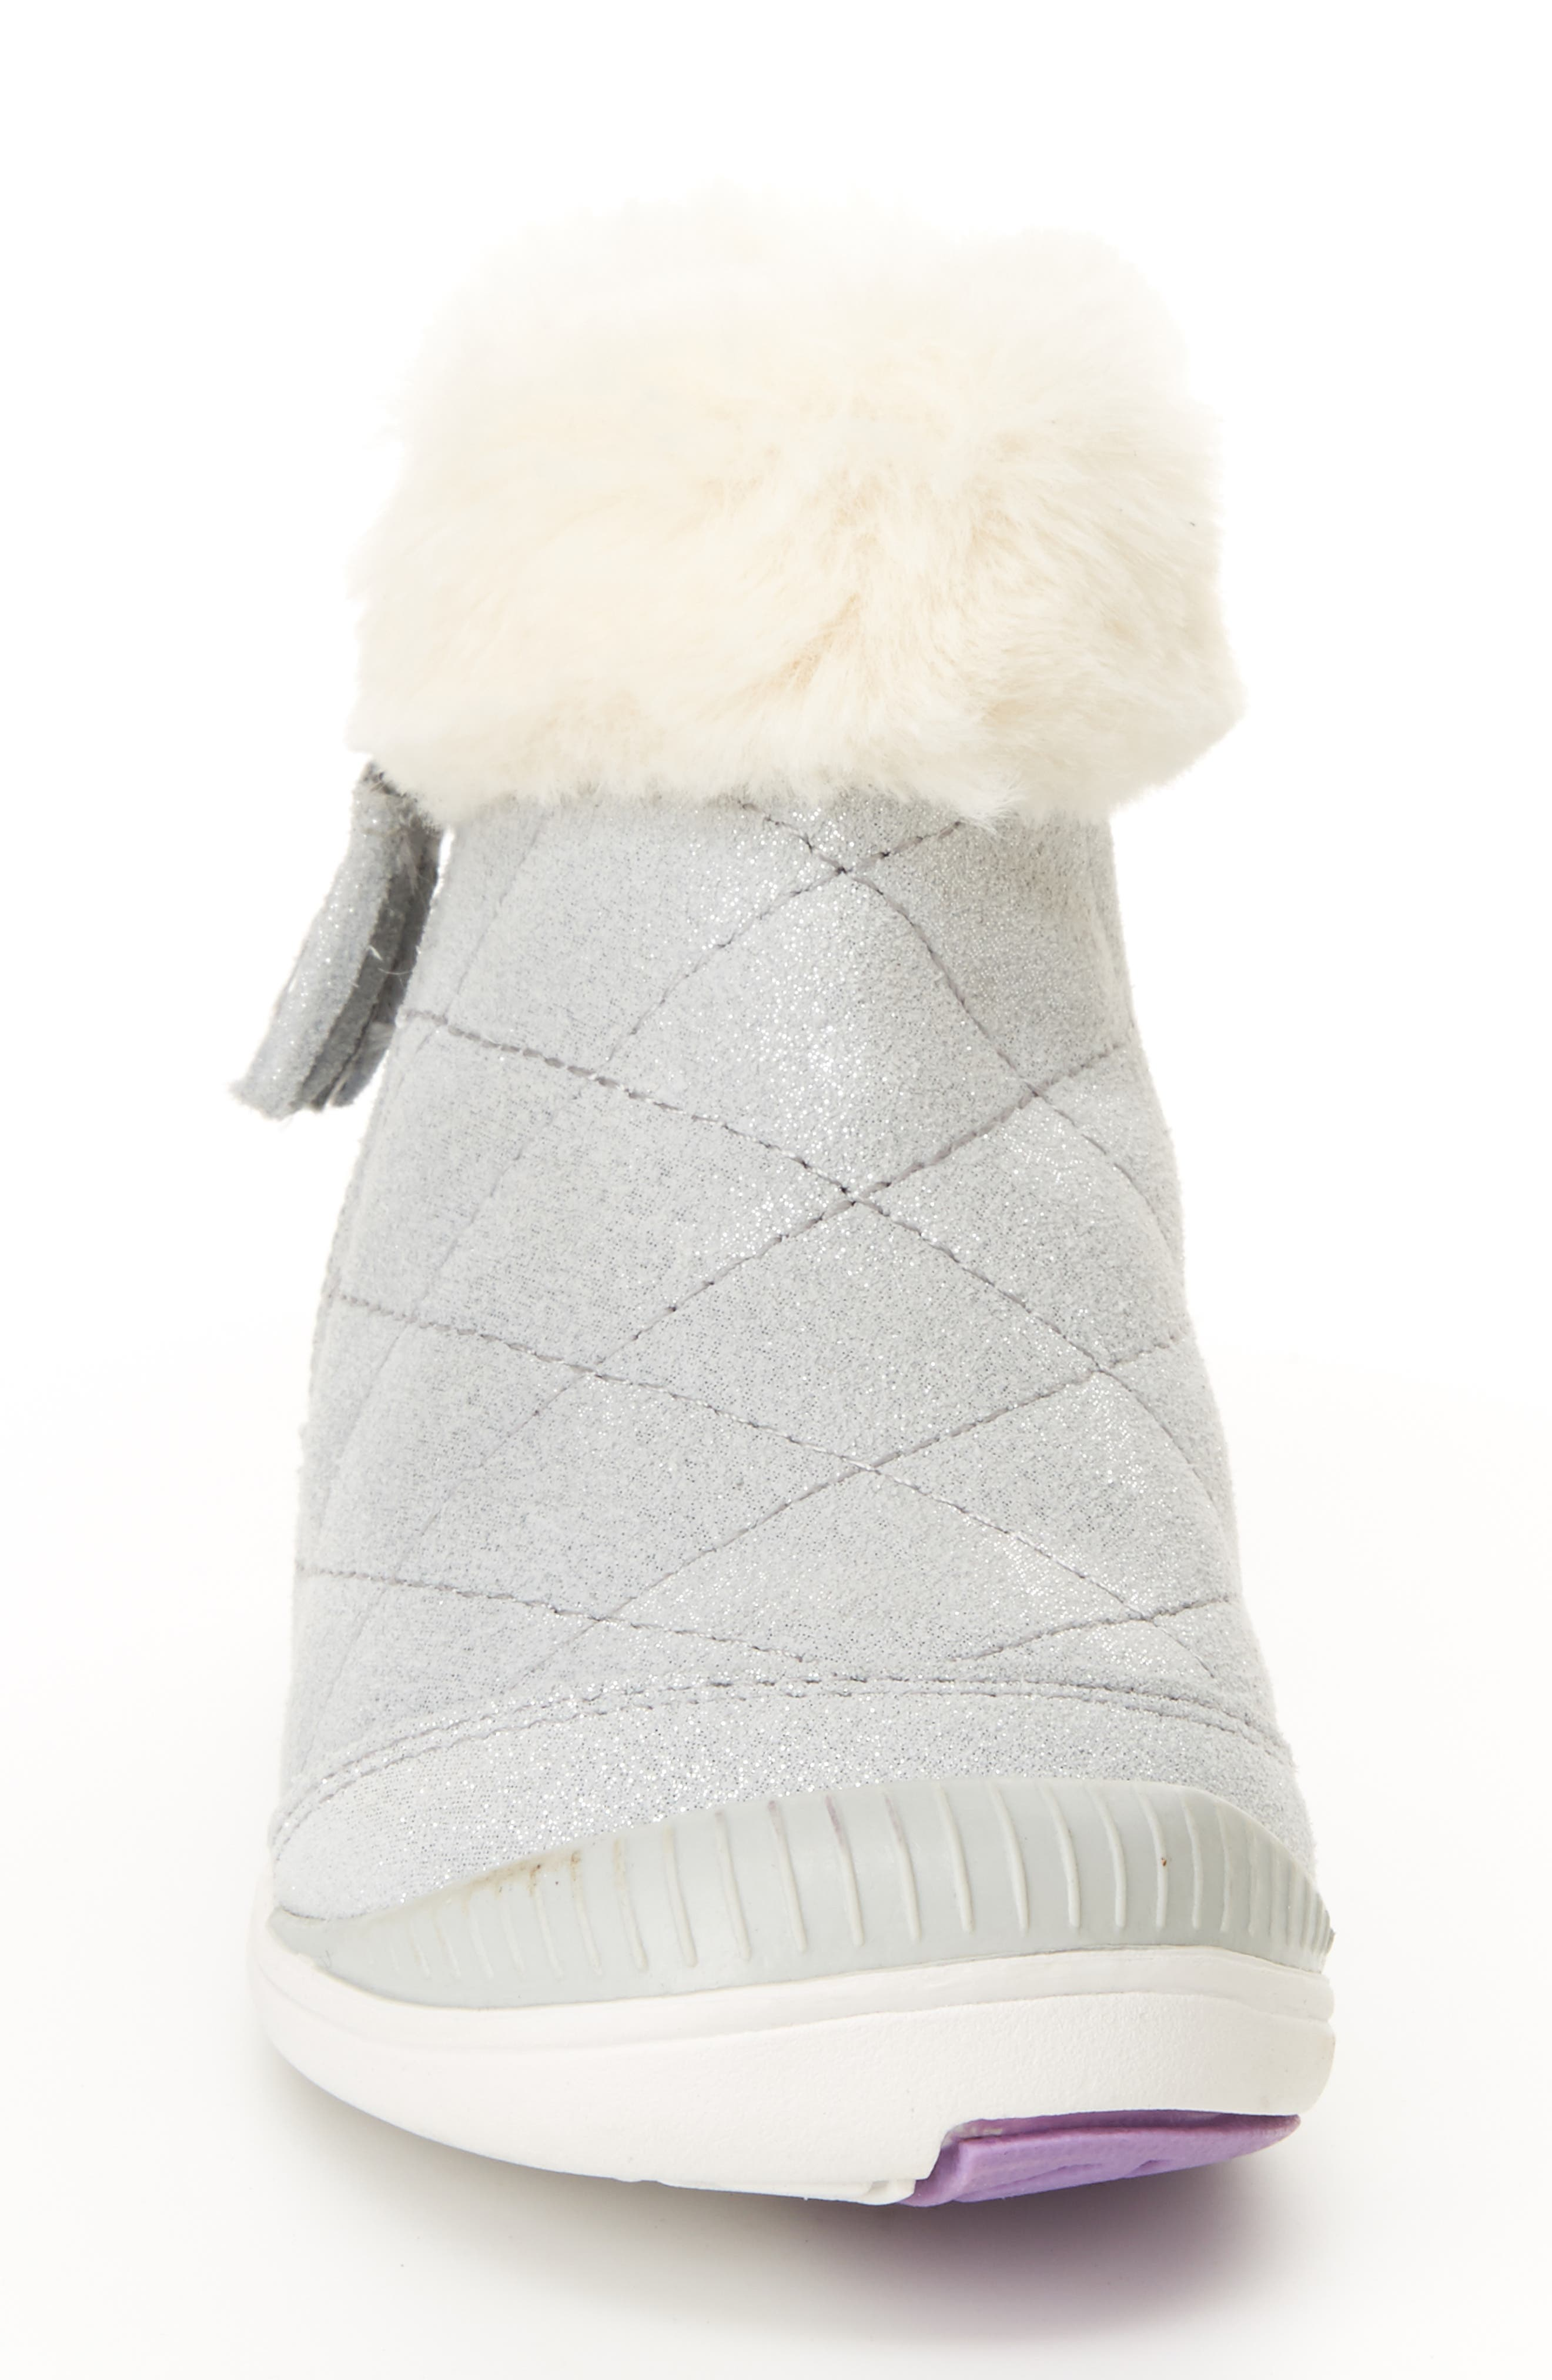 Chloe Faux Fur Quilted Bootie,                             Alternate thumbnail 3, color,                             SILVER